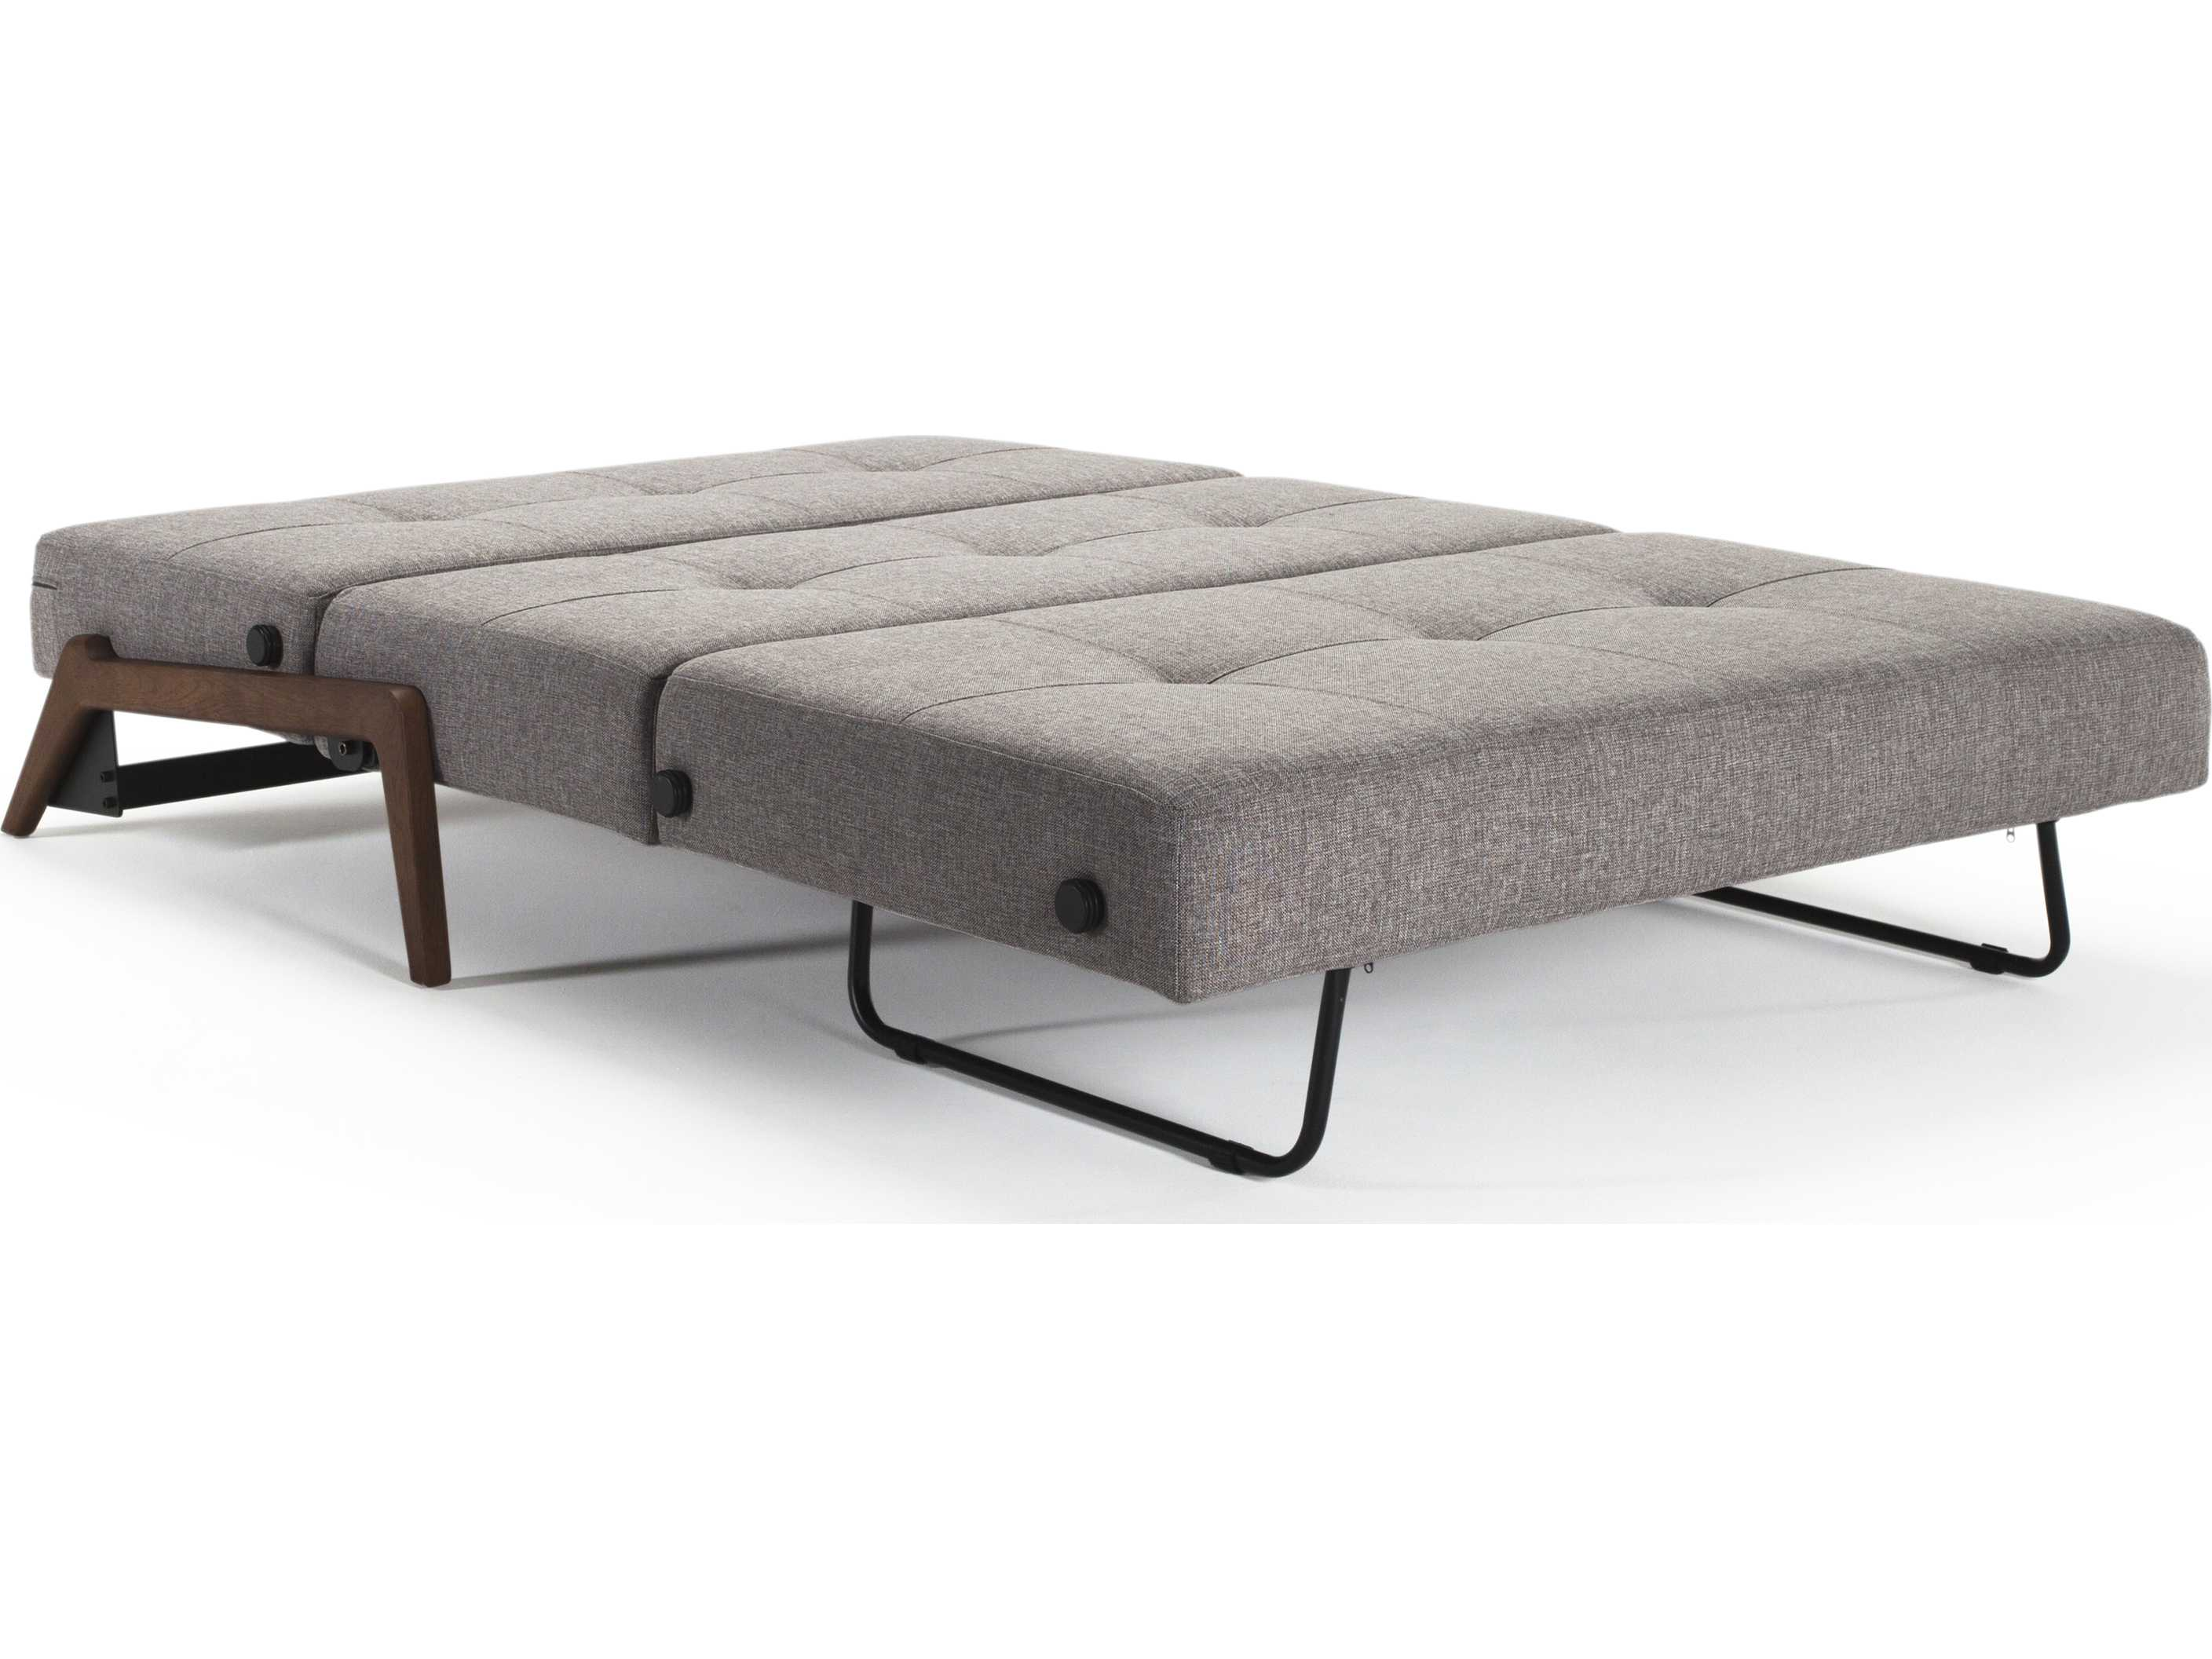 Queen Sofa Bed Ottoman Innovation Cubed Walnut Legs Queen Size Sofa Bed